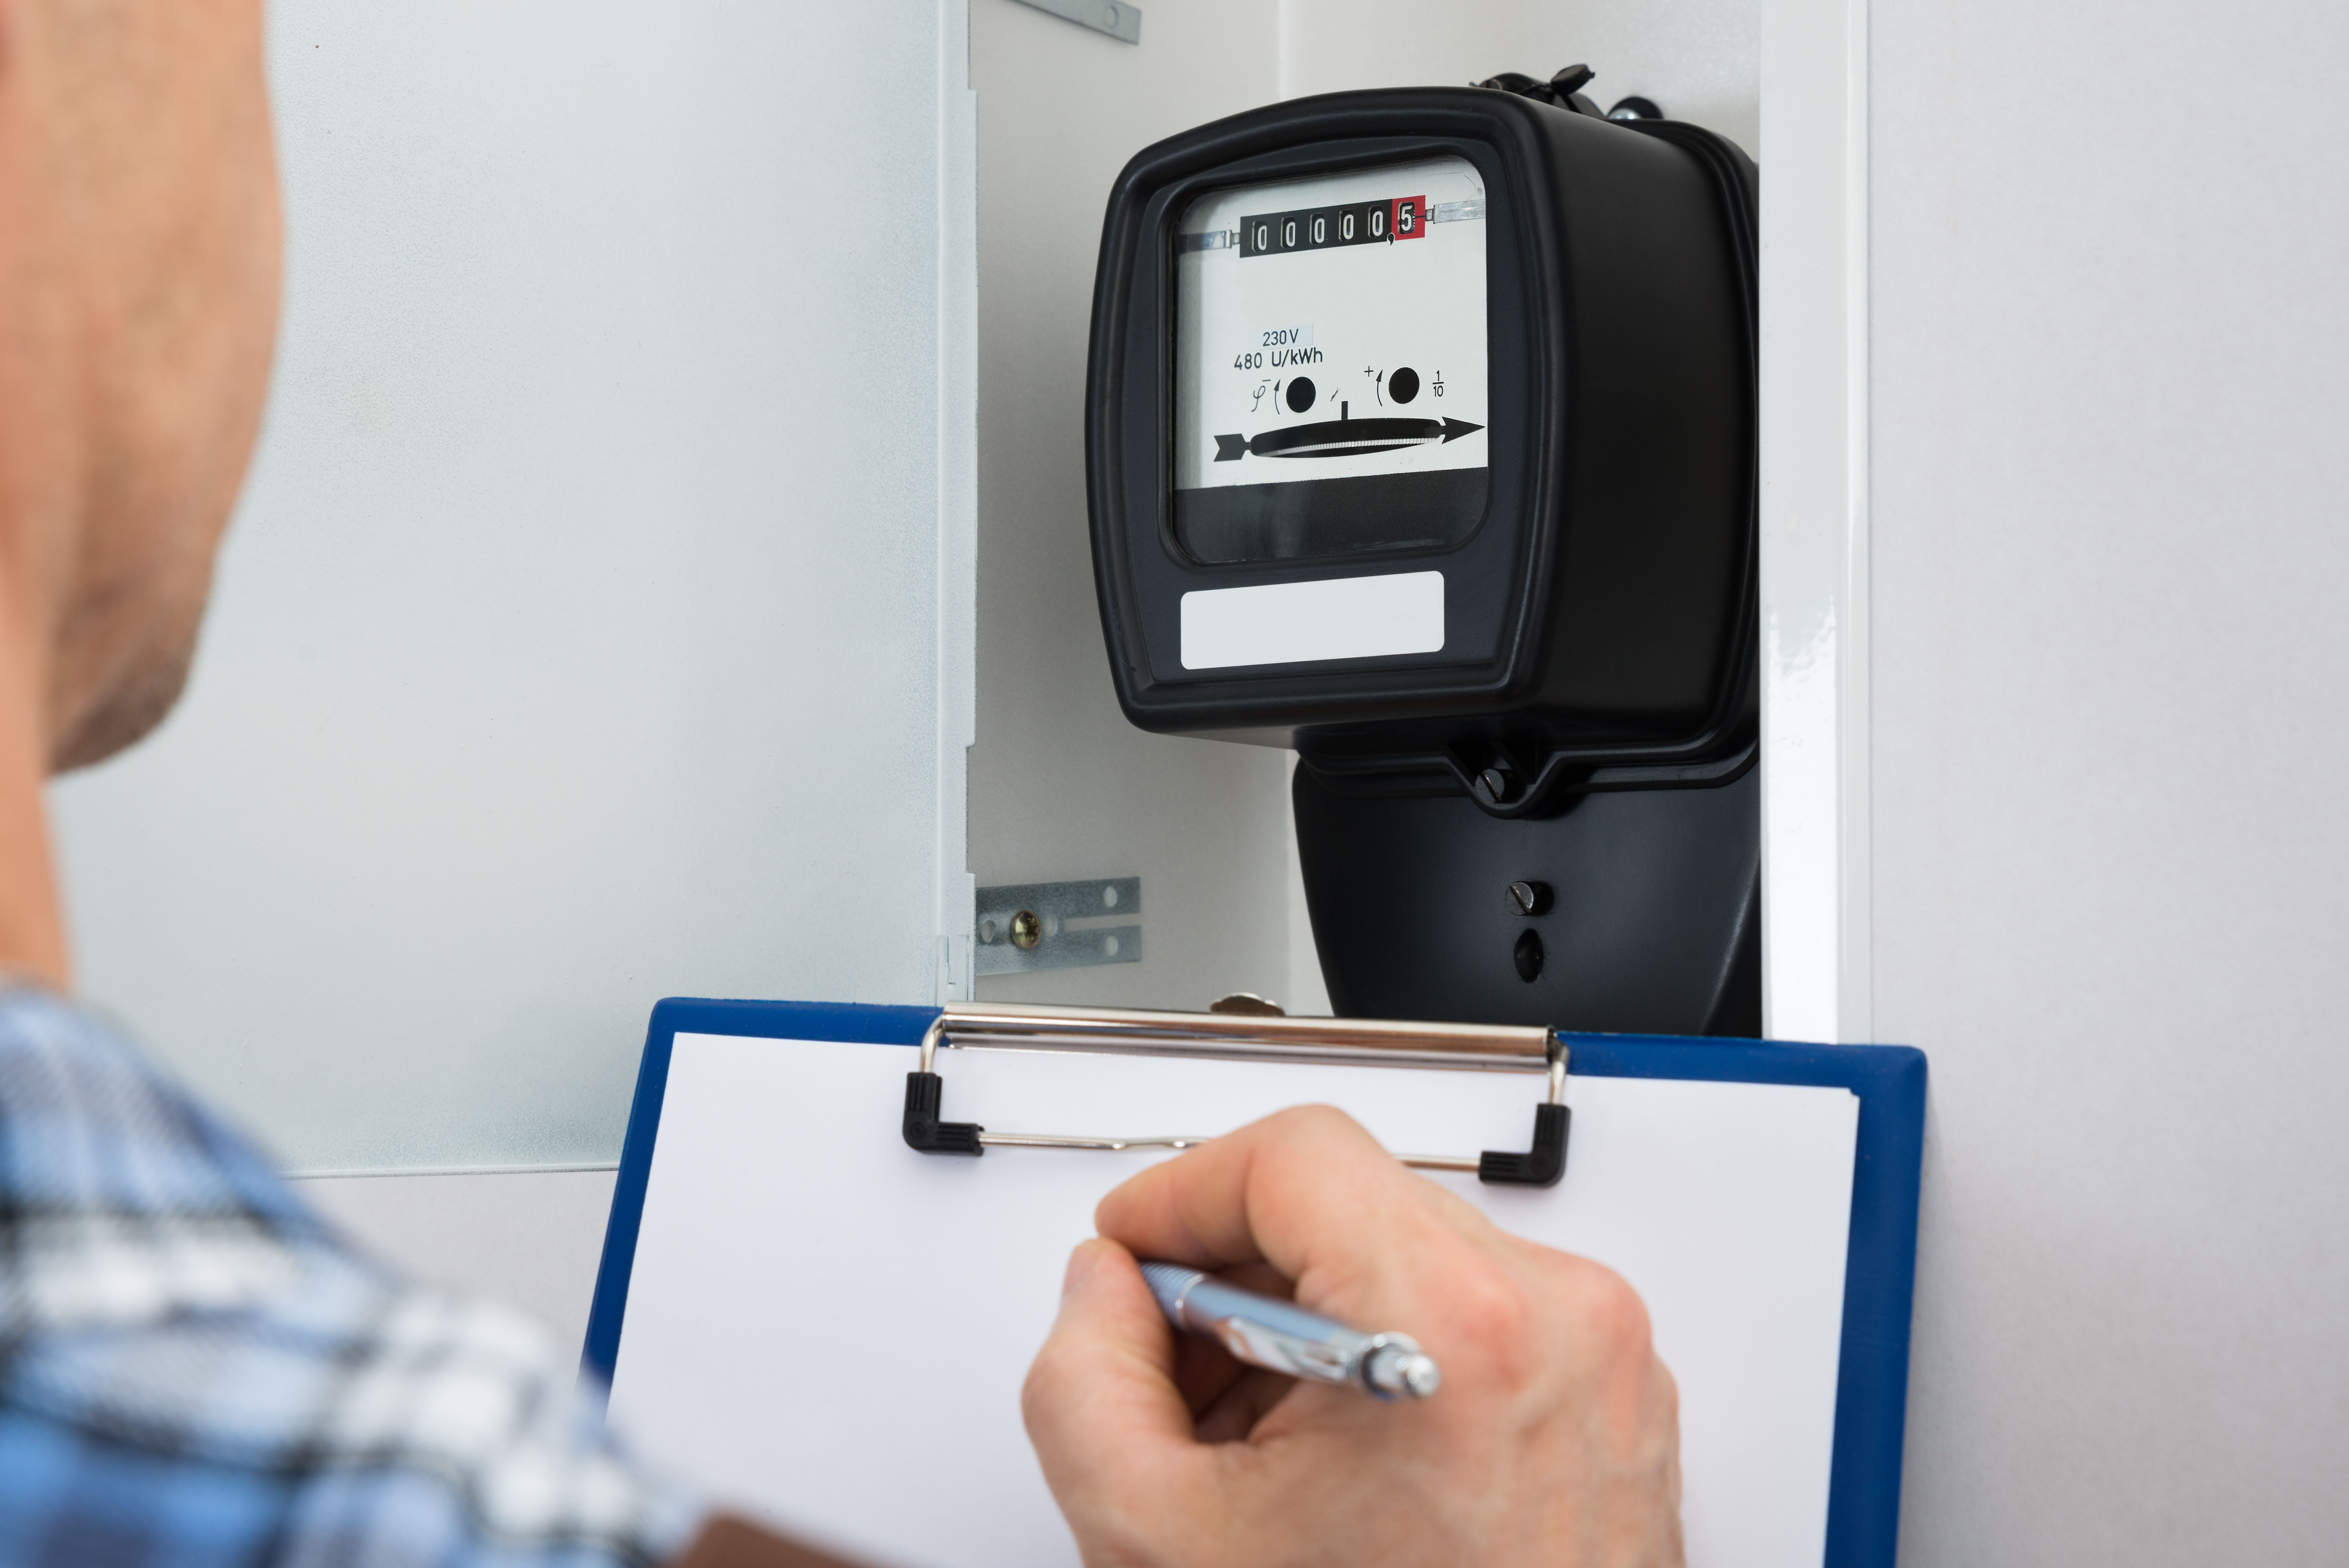 A DSO technician reads the electricity meter - Energyprice